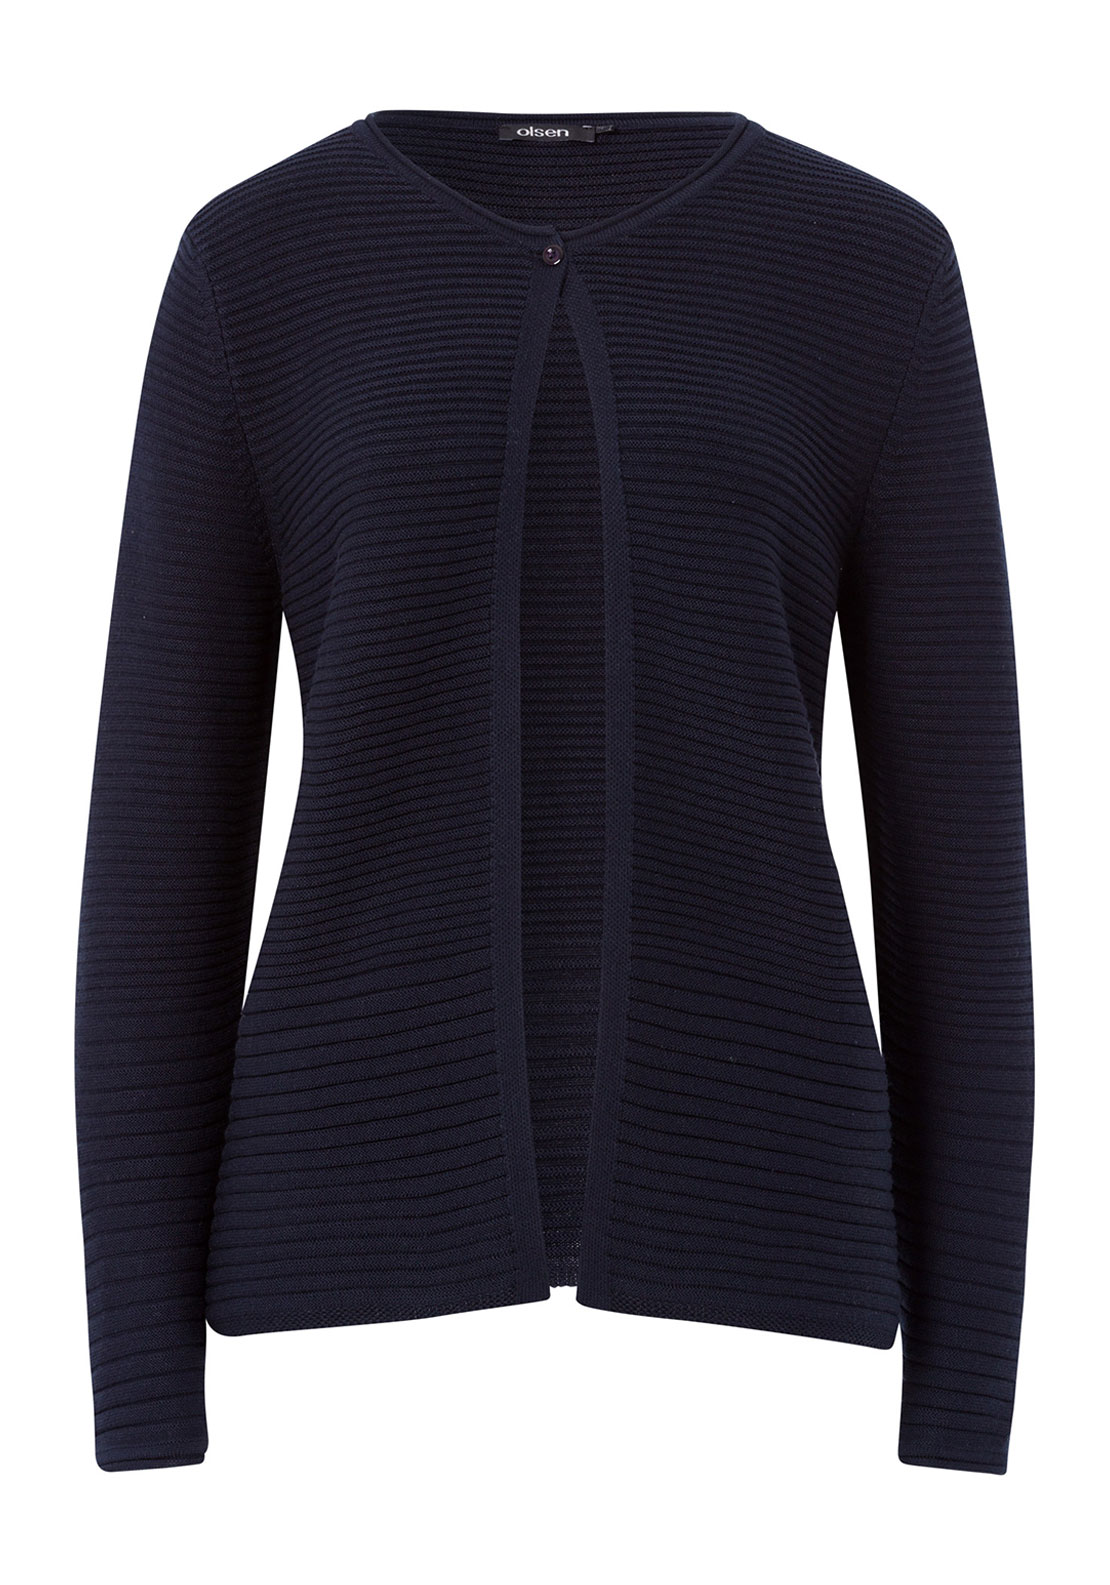 Olsen Ribbed Cotton Blend Cardigan, Navy